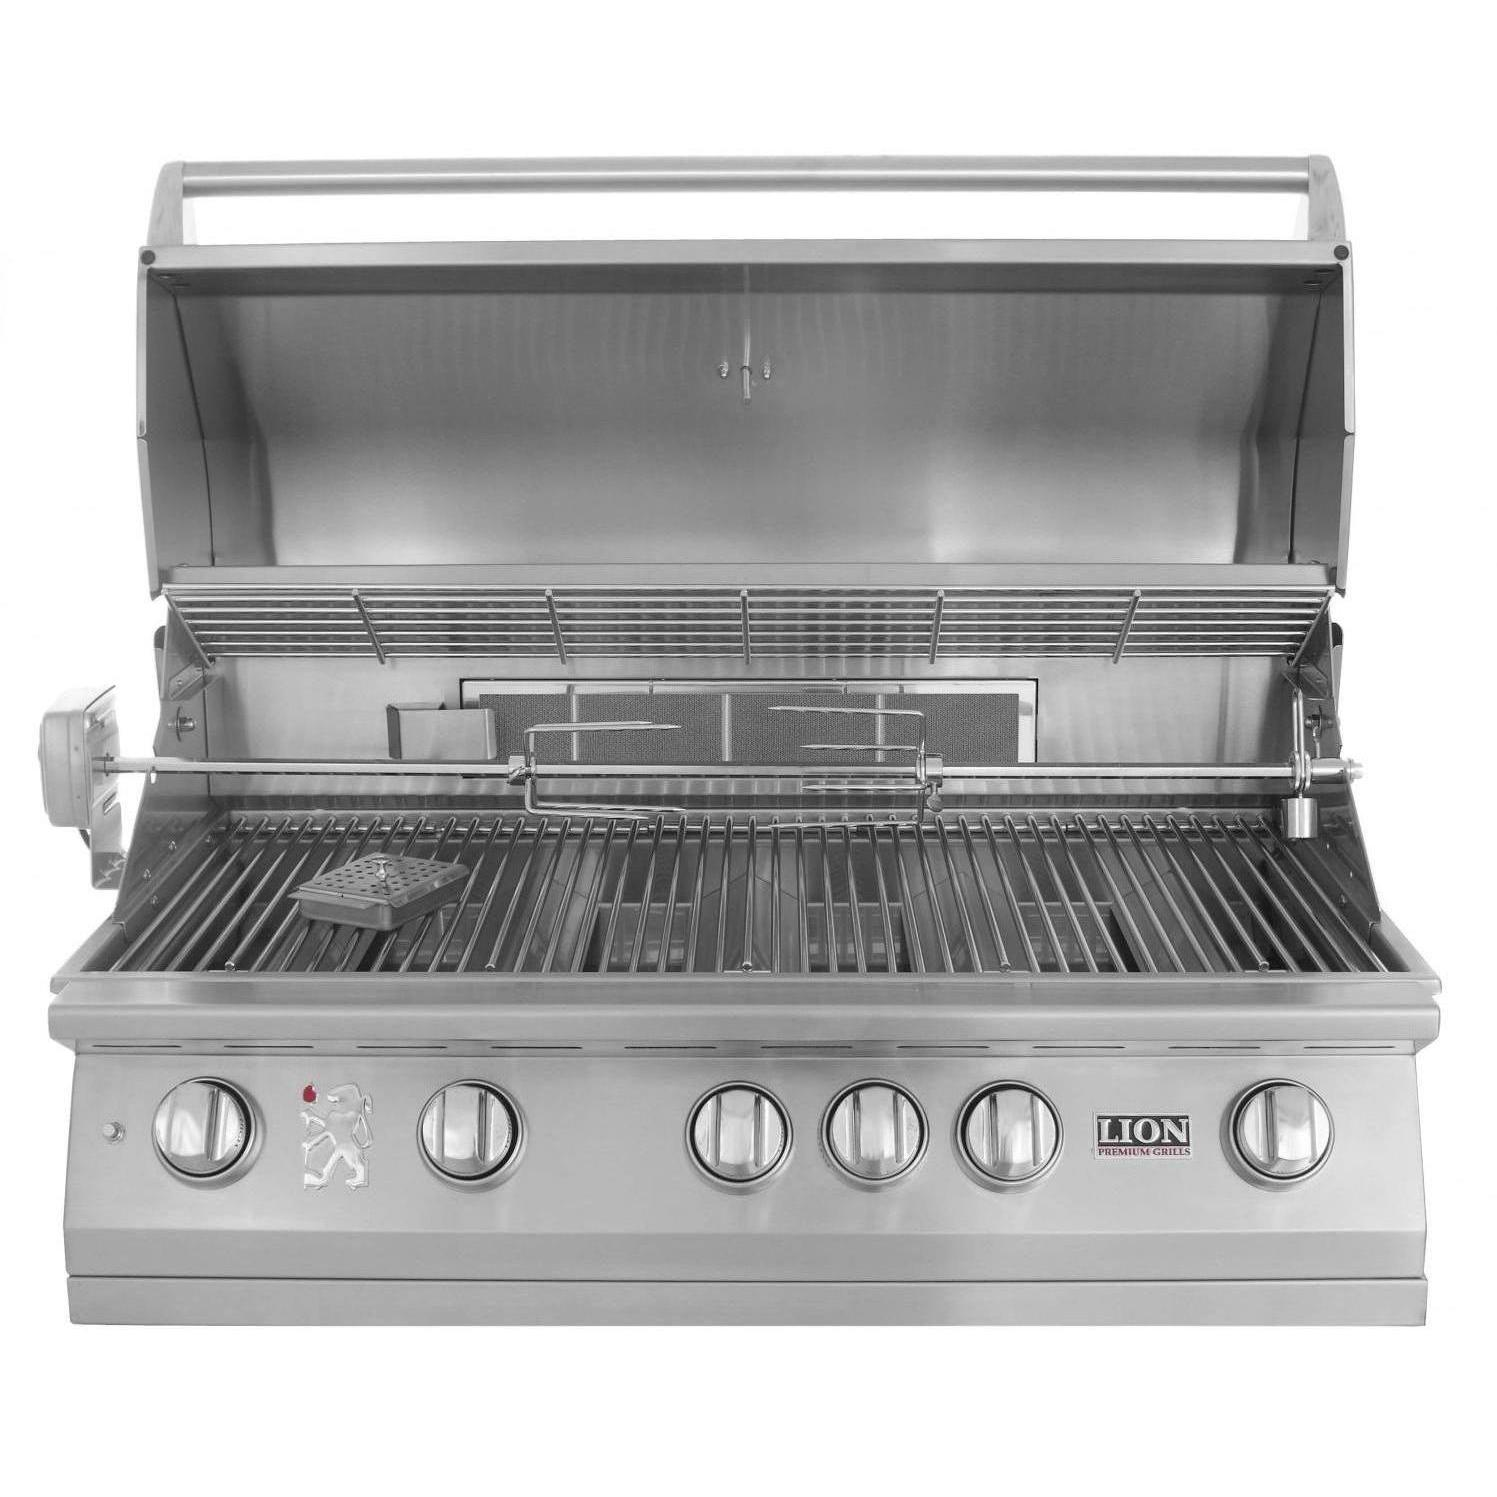 Lion 40 Inch Built In Gas Grill L90000 Stainless Steel